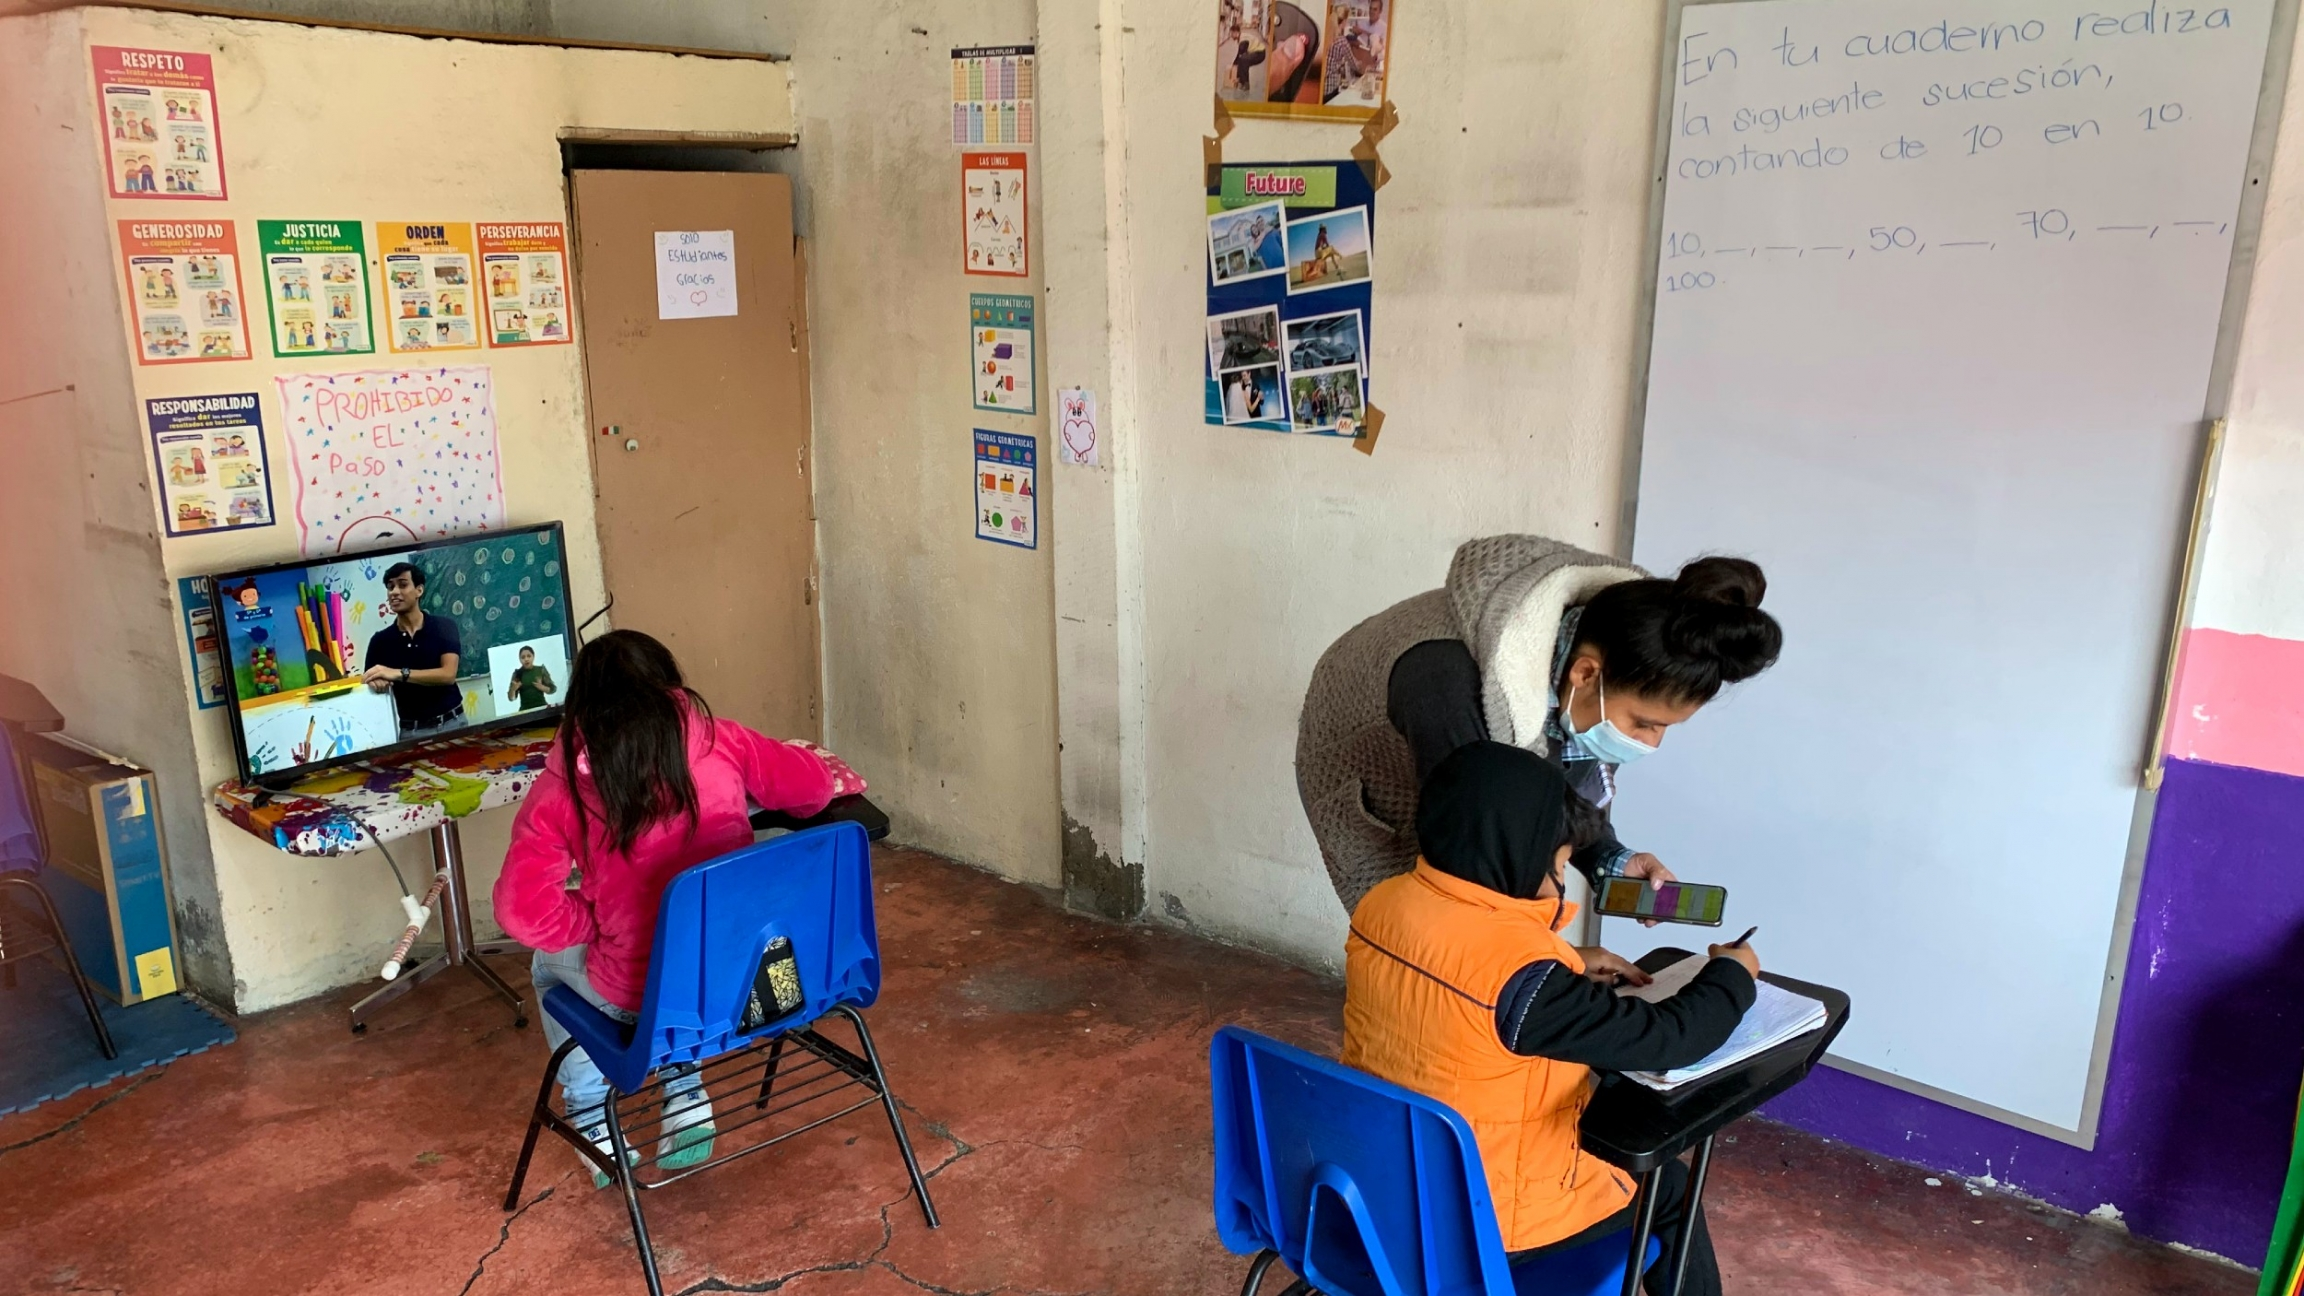 Dalia Davila, co-owner of La Abuela tortilla shop, helps Axel Carreño and Maria de la Luz Carreño at a space for students to use the internet and television for schooling.